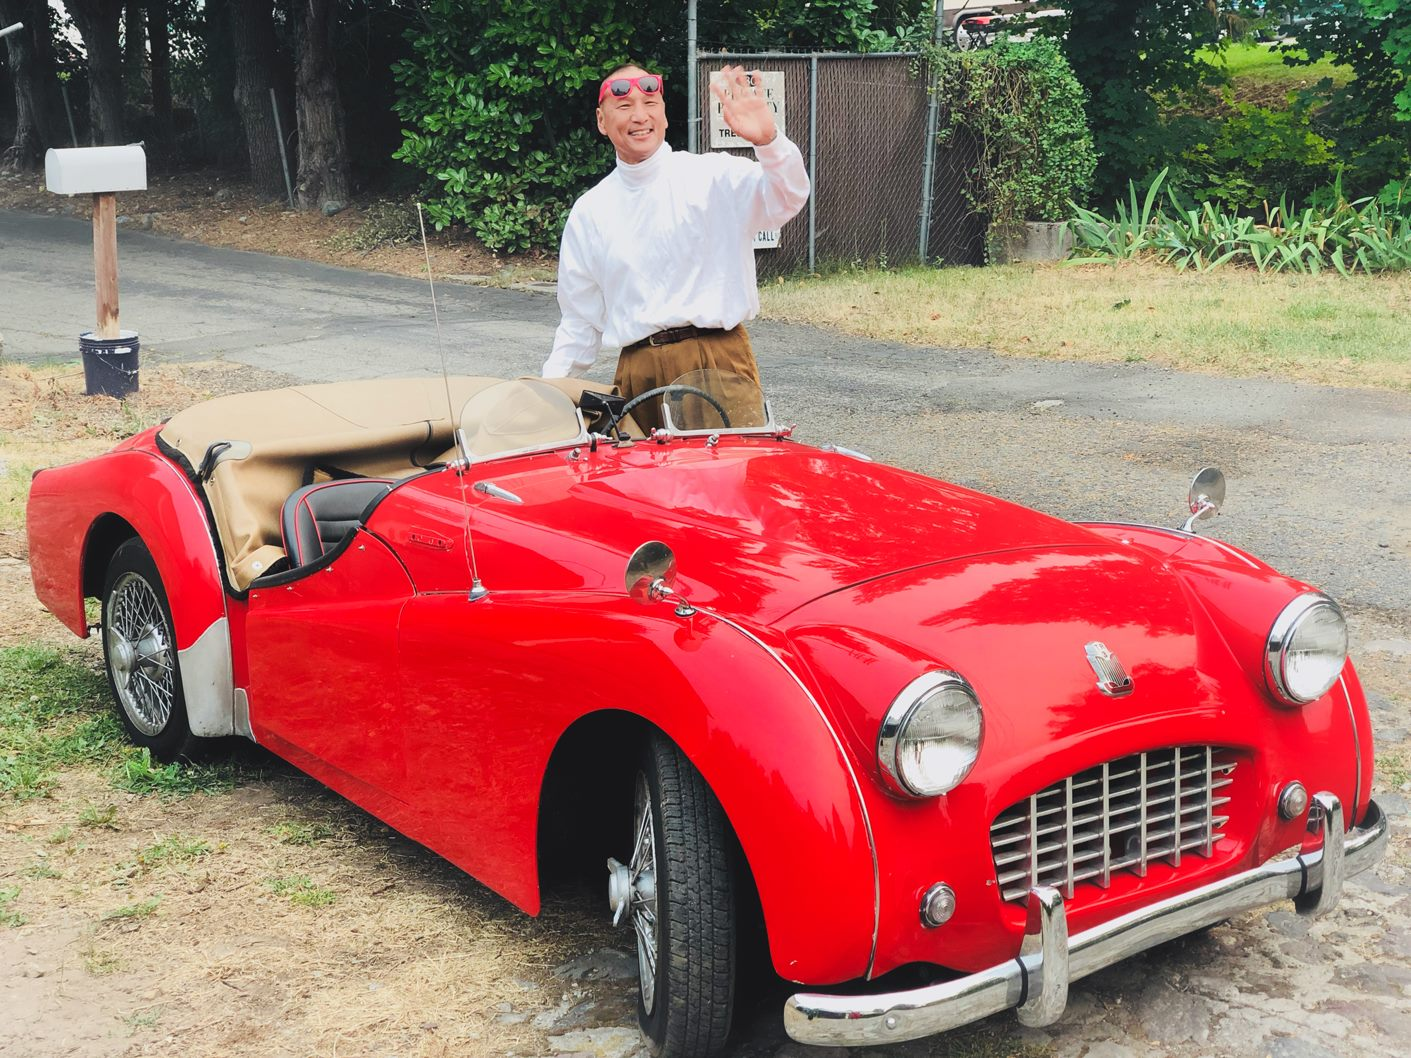 '57 Triumph, An Unlikely Family Car